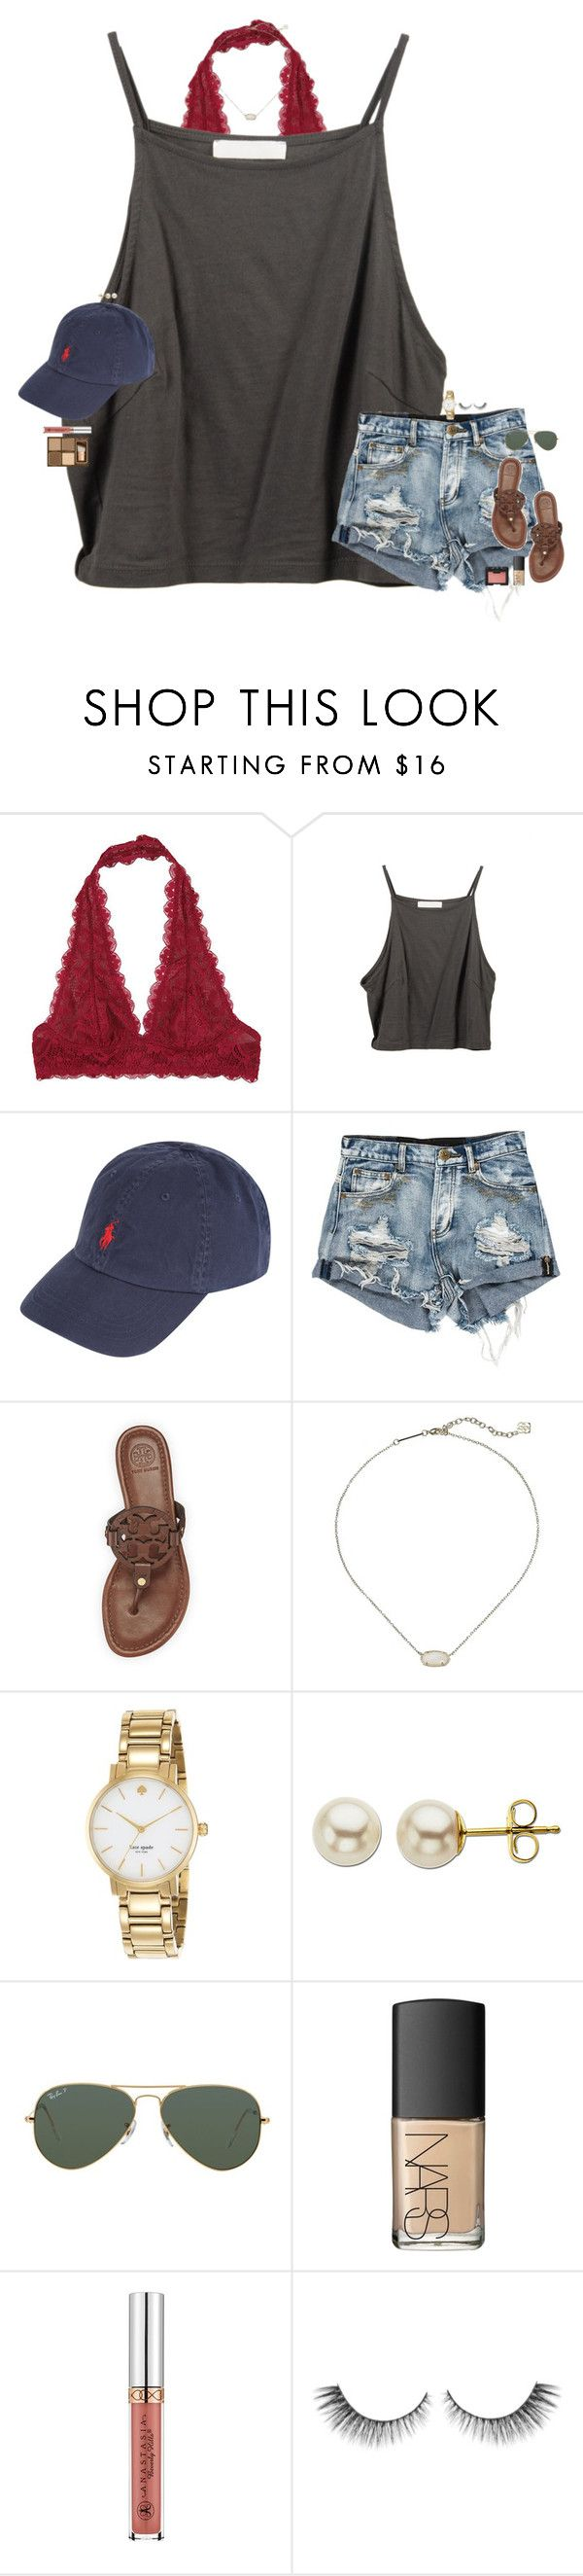 """•It's clear to see that time hasn't changed a thing•"" by maggie-prep ❤ liked on Polyvore featuring Free People, Polo Ralph Lauren, Tory Burch, Kendra Scott, Kate Spade, Lord & Taylor, Ray-Ban, NARS Cosmetics and Too Faced Cosmetics"